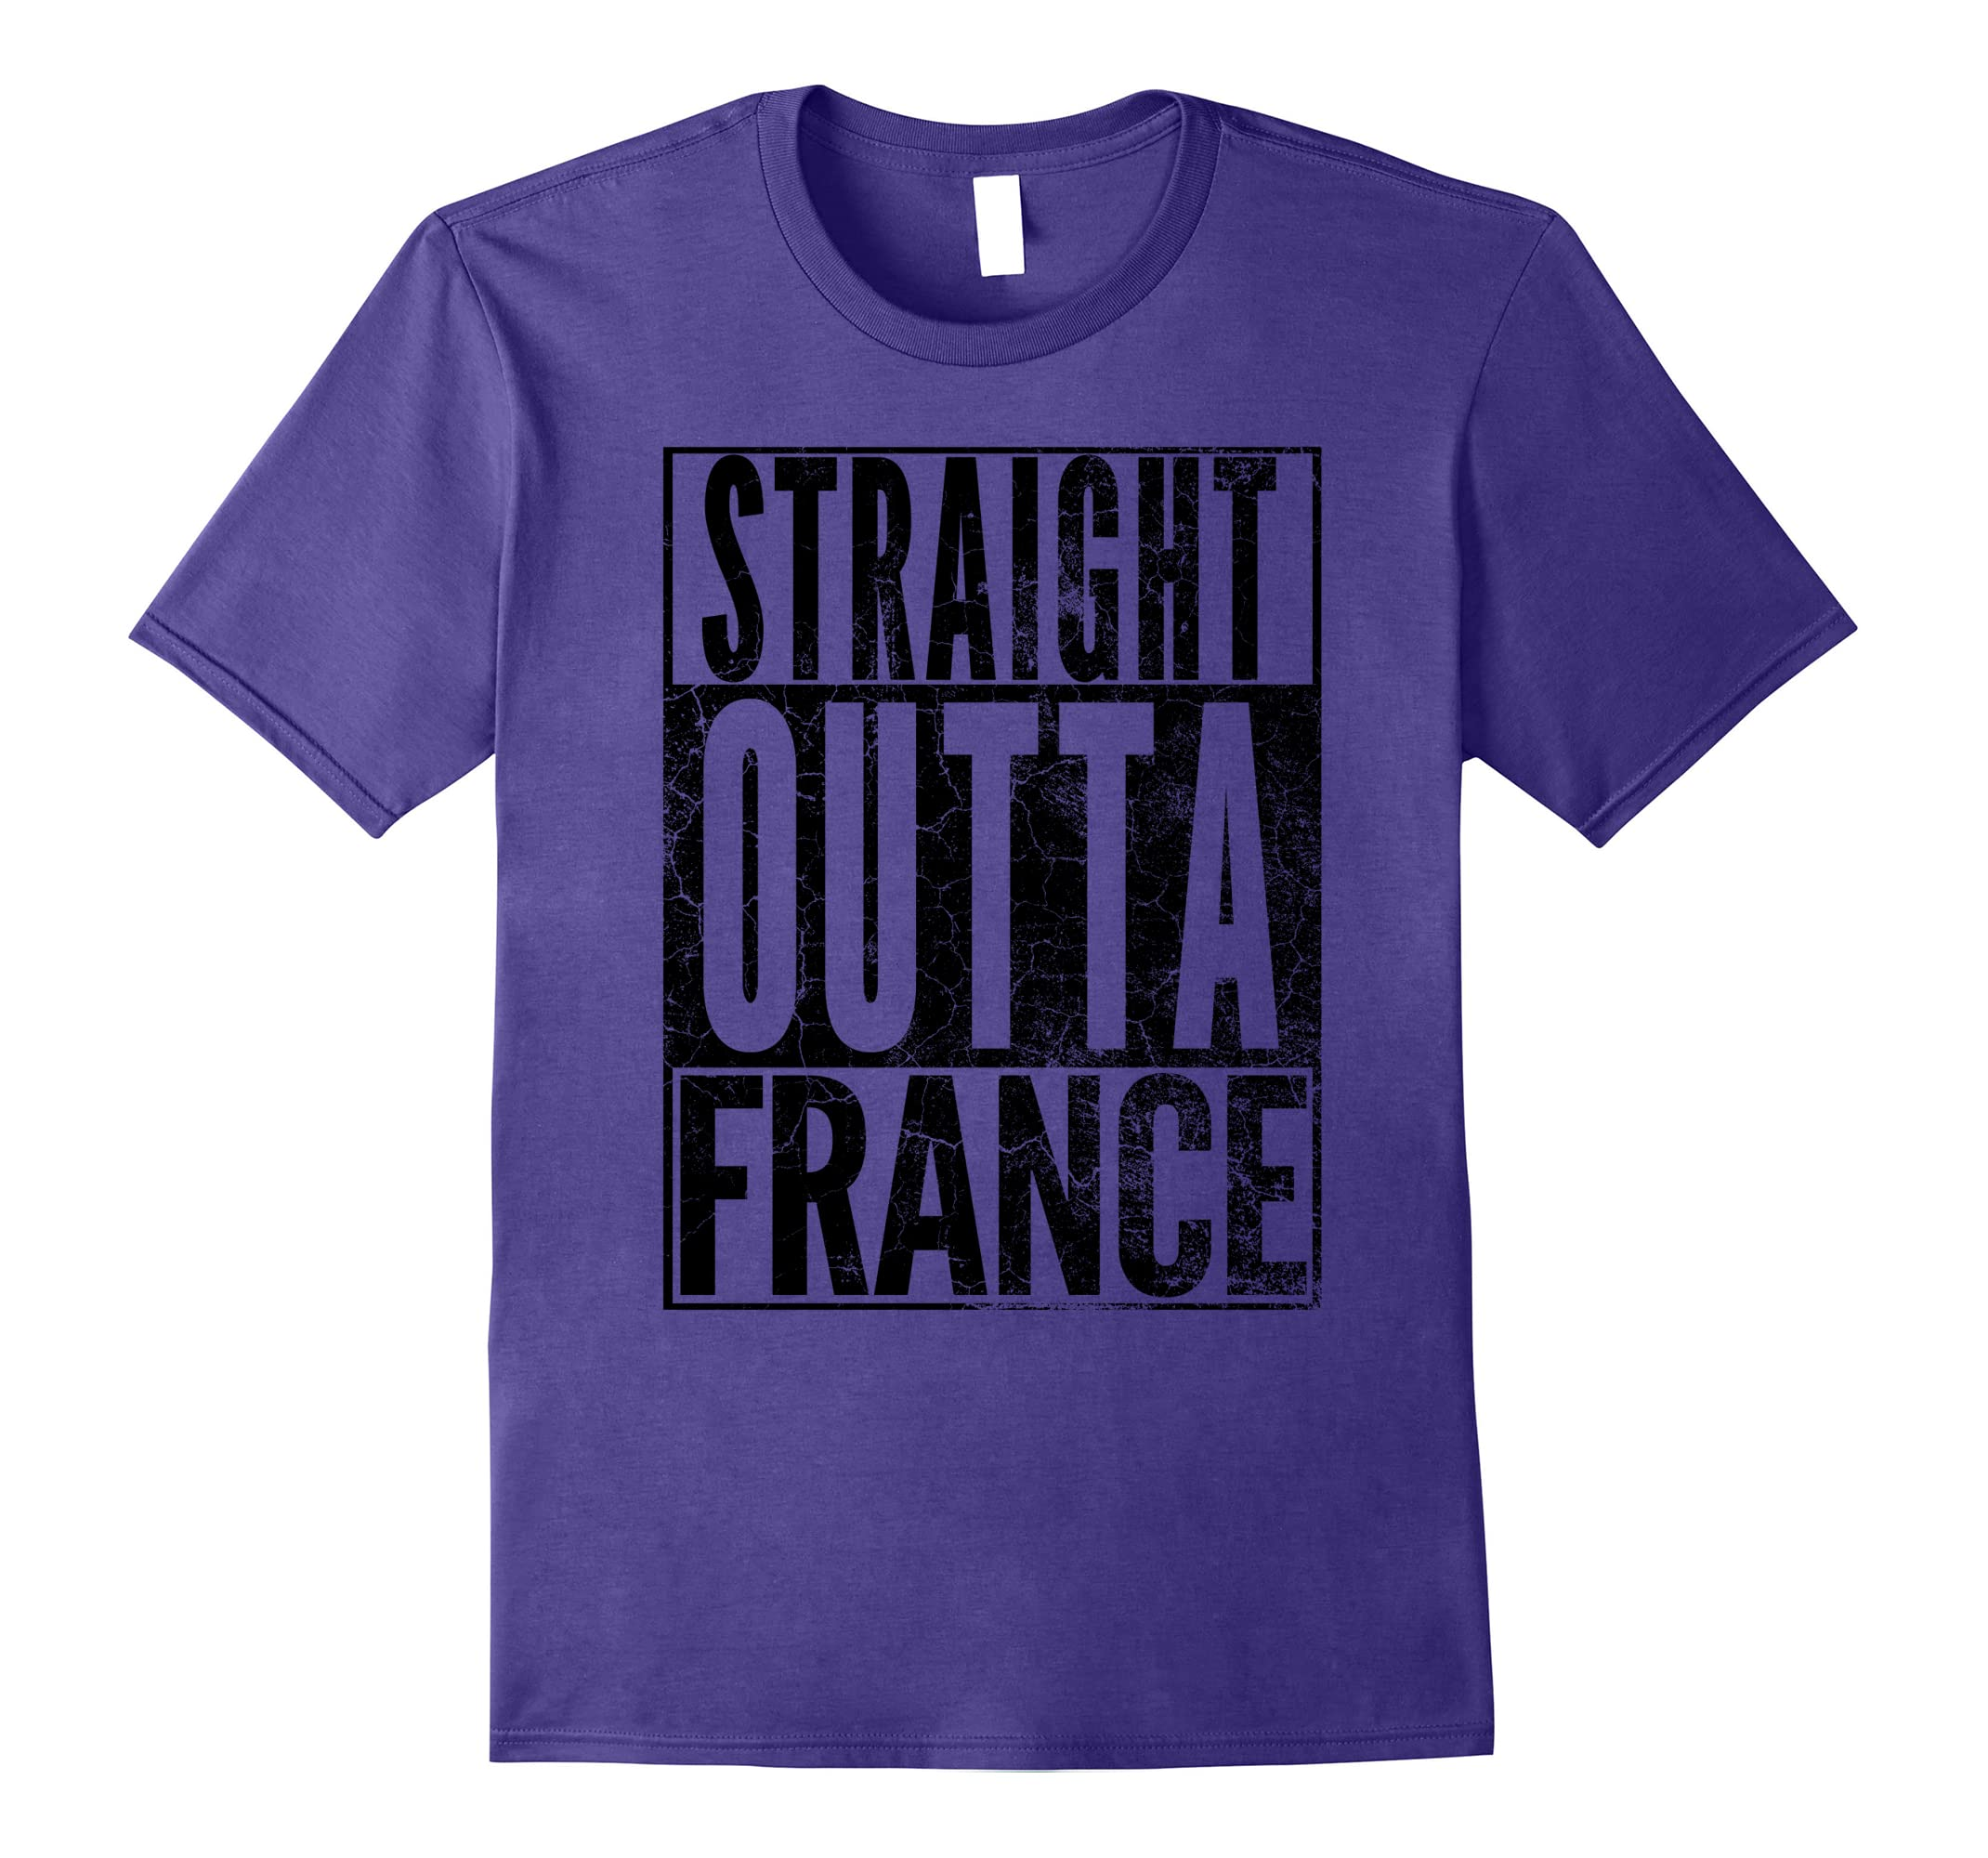 STRAIGHT OUTTA FRANCE FUNNY NOVELTY APPAREL SHIRT GIFT-RT